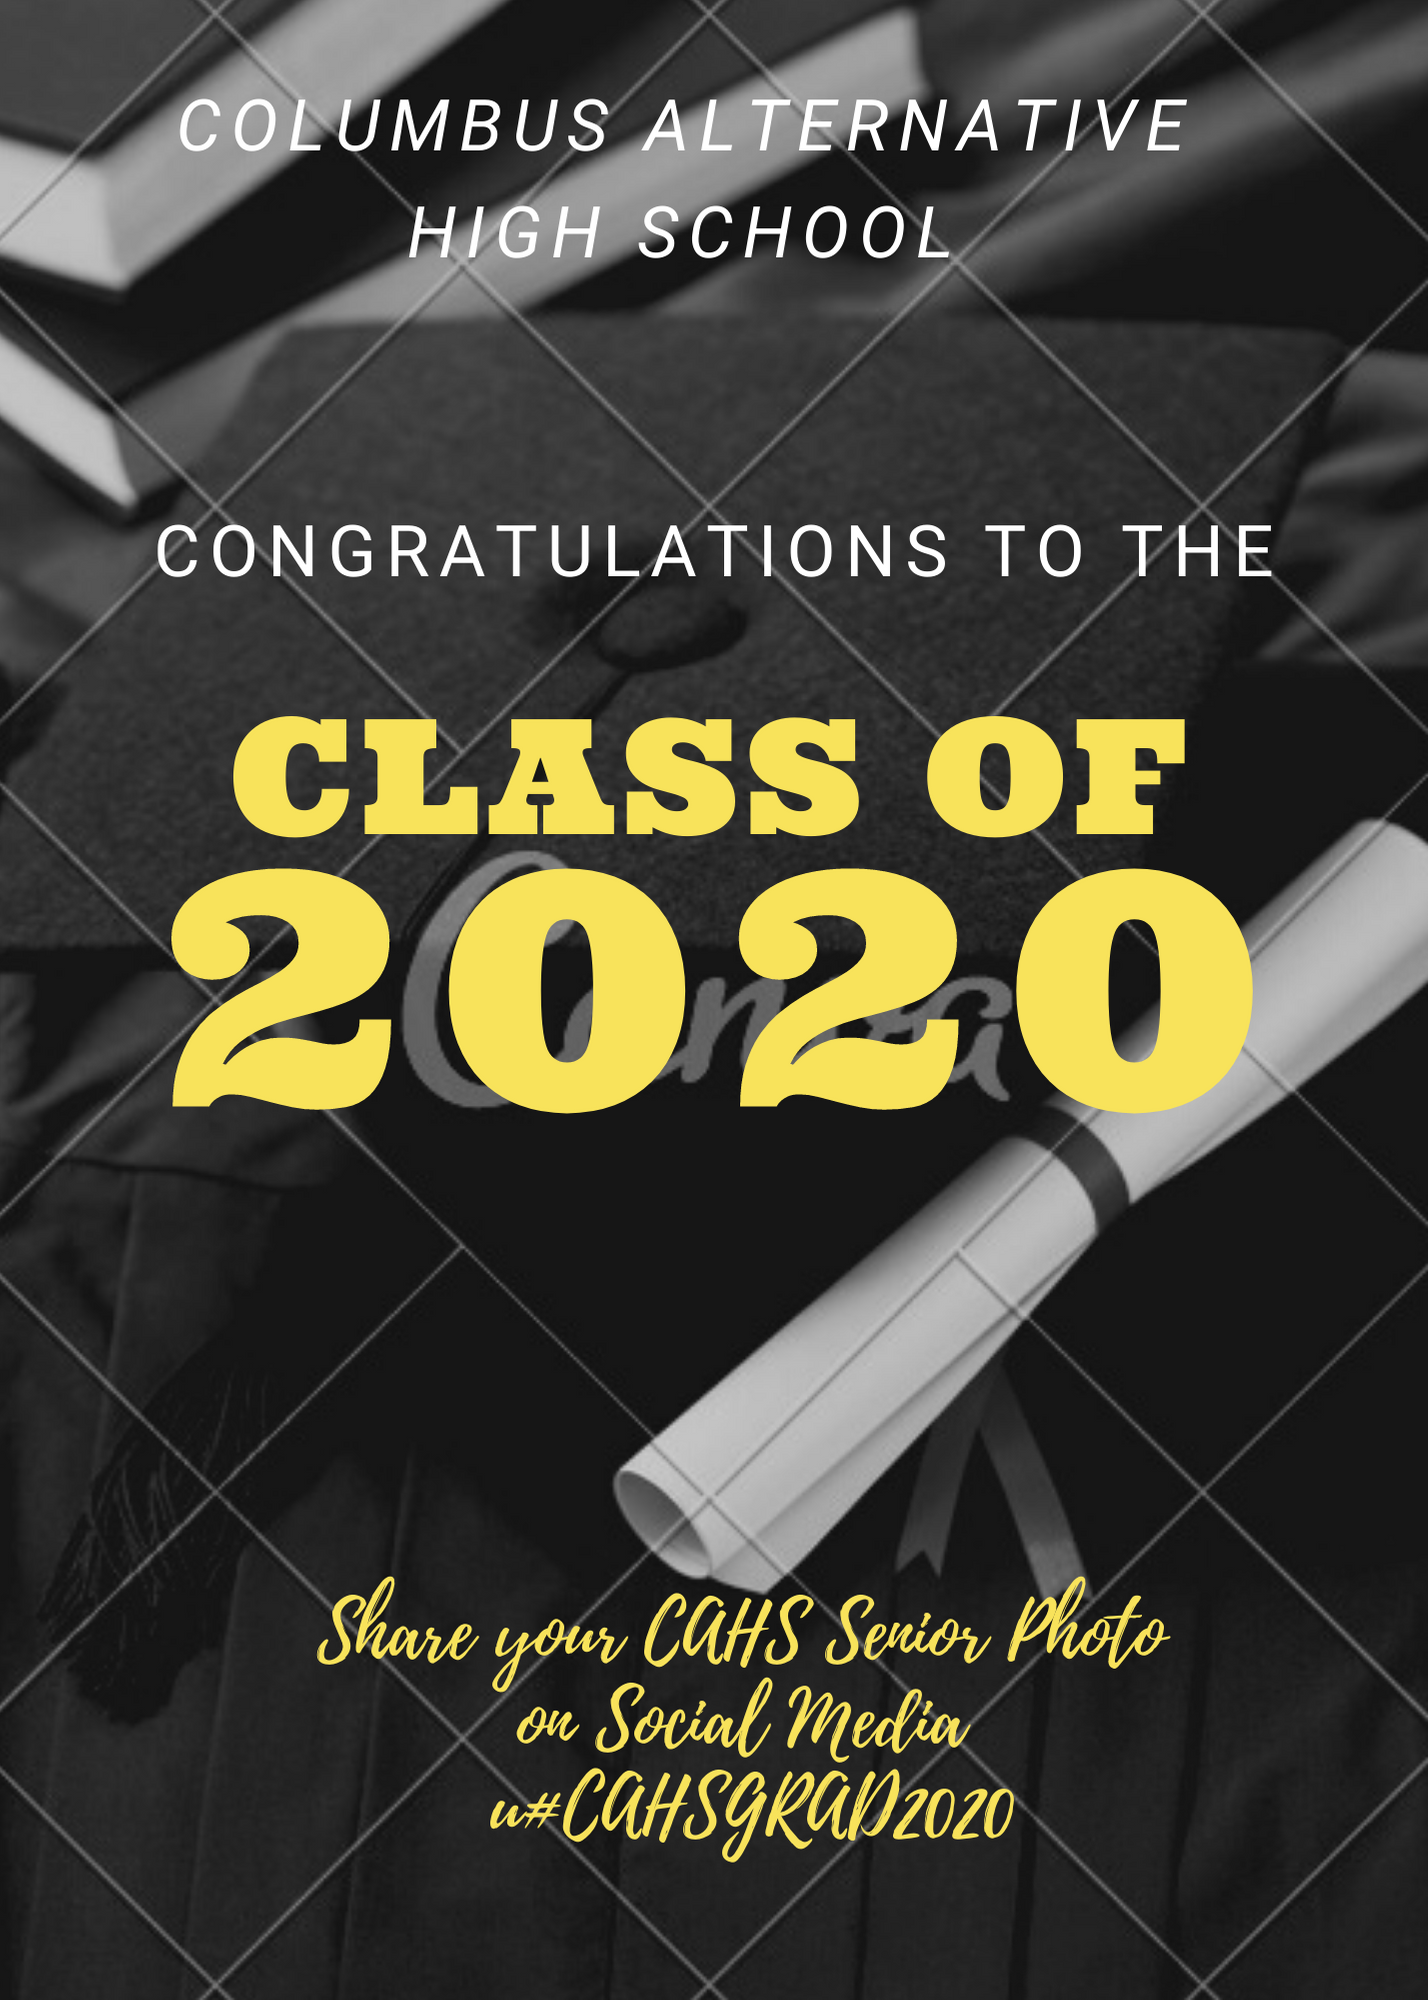 Congratulations Class of 2020!  We are so proud of you.